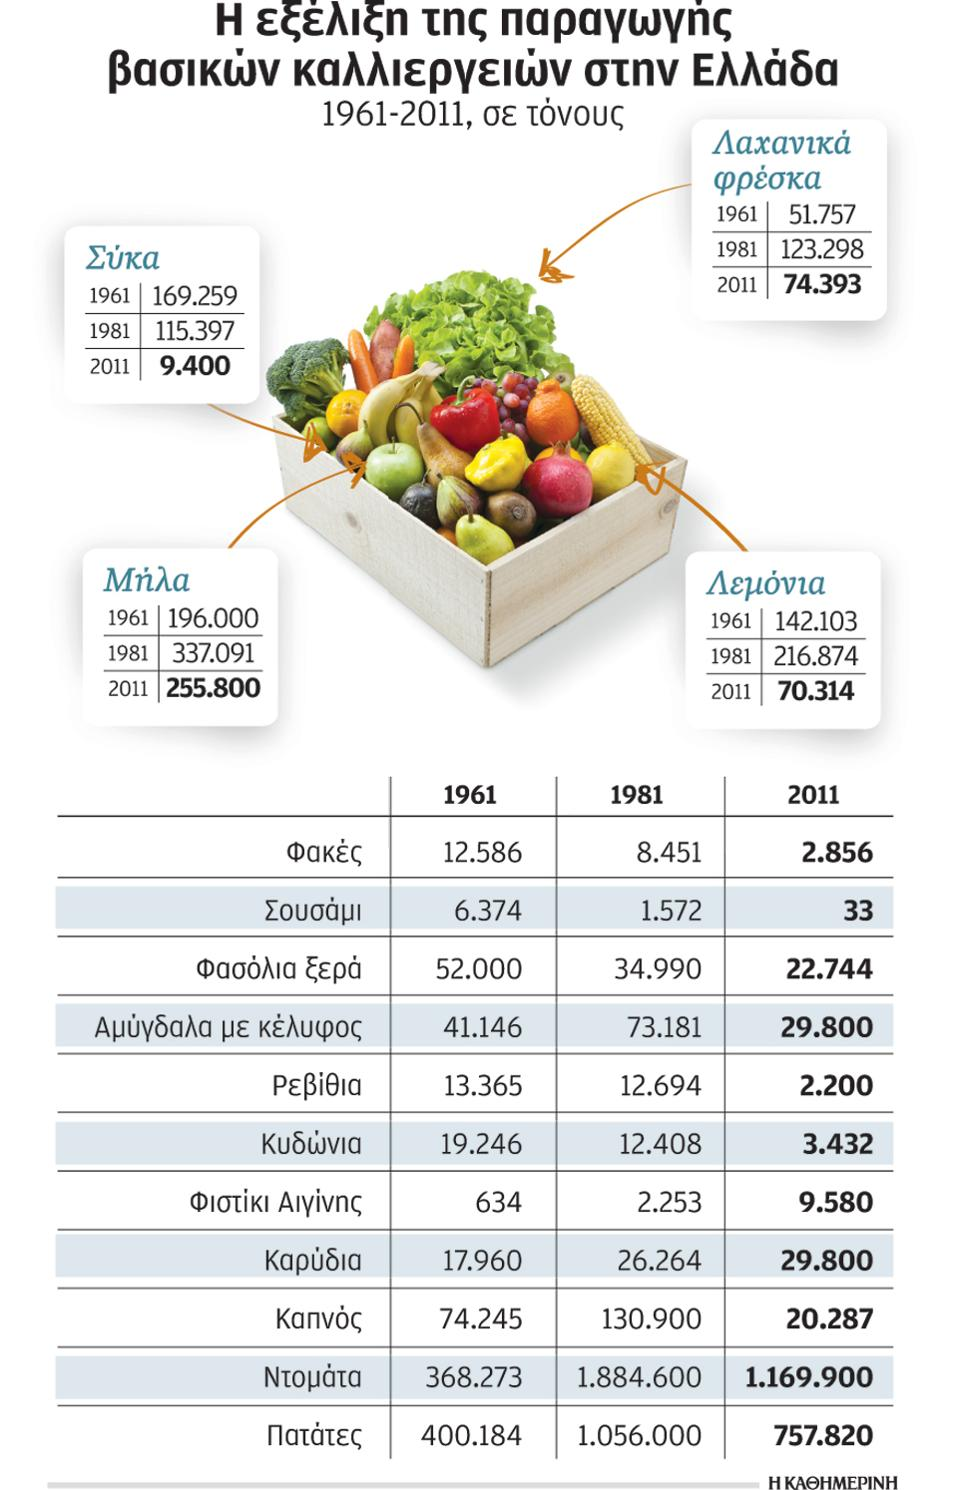 http://s.kathimerini.gr/resources/2014-04/05s13kalliergies-thumb-large.jpg